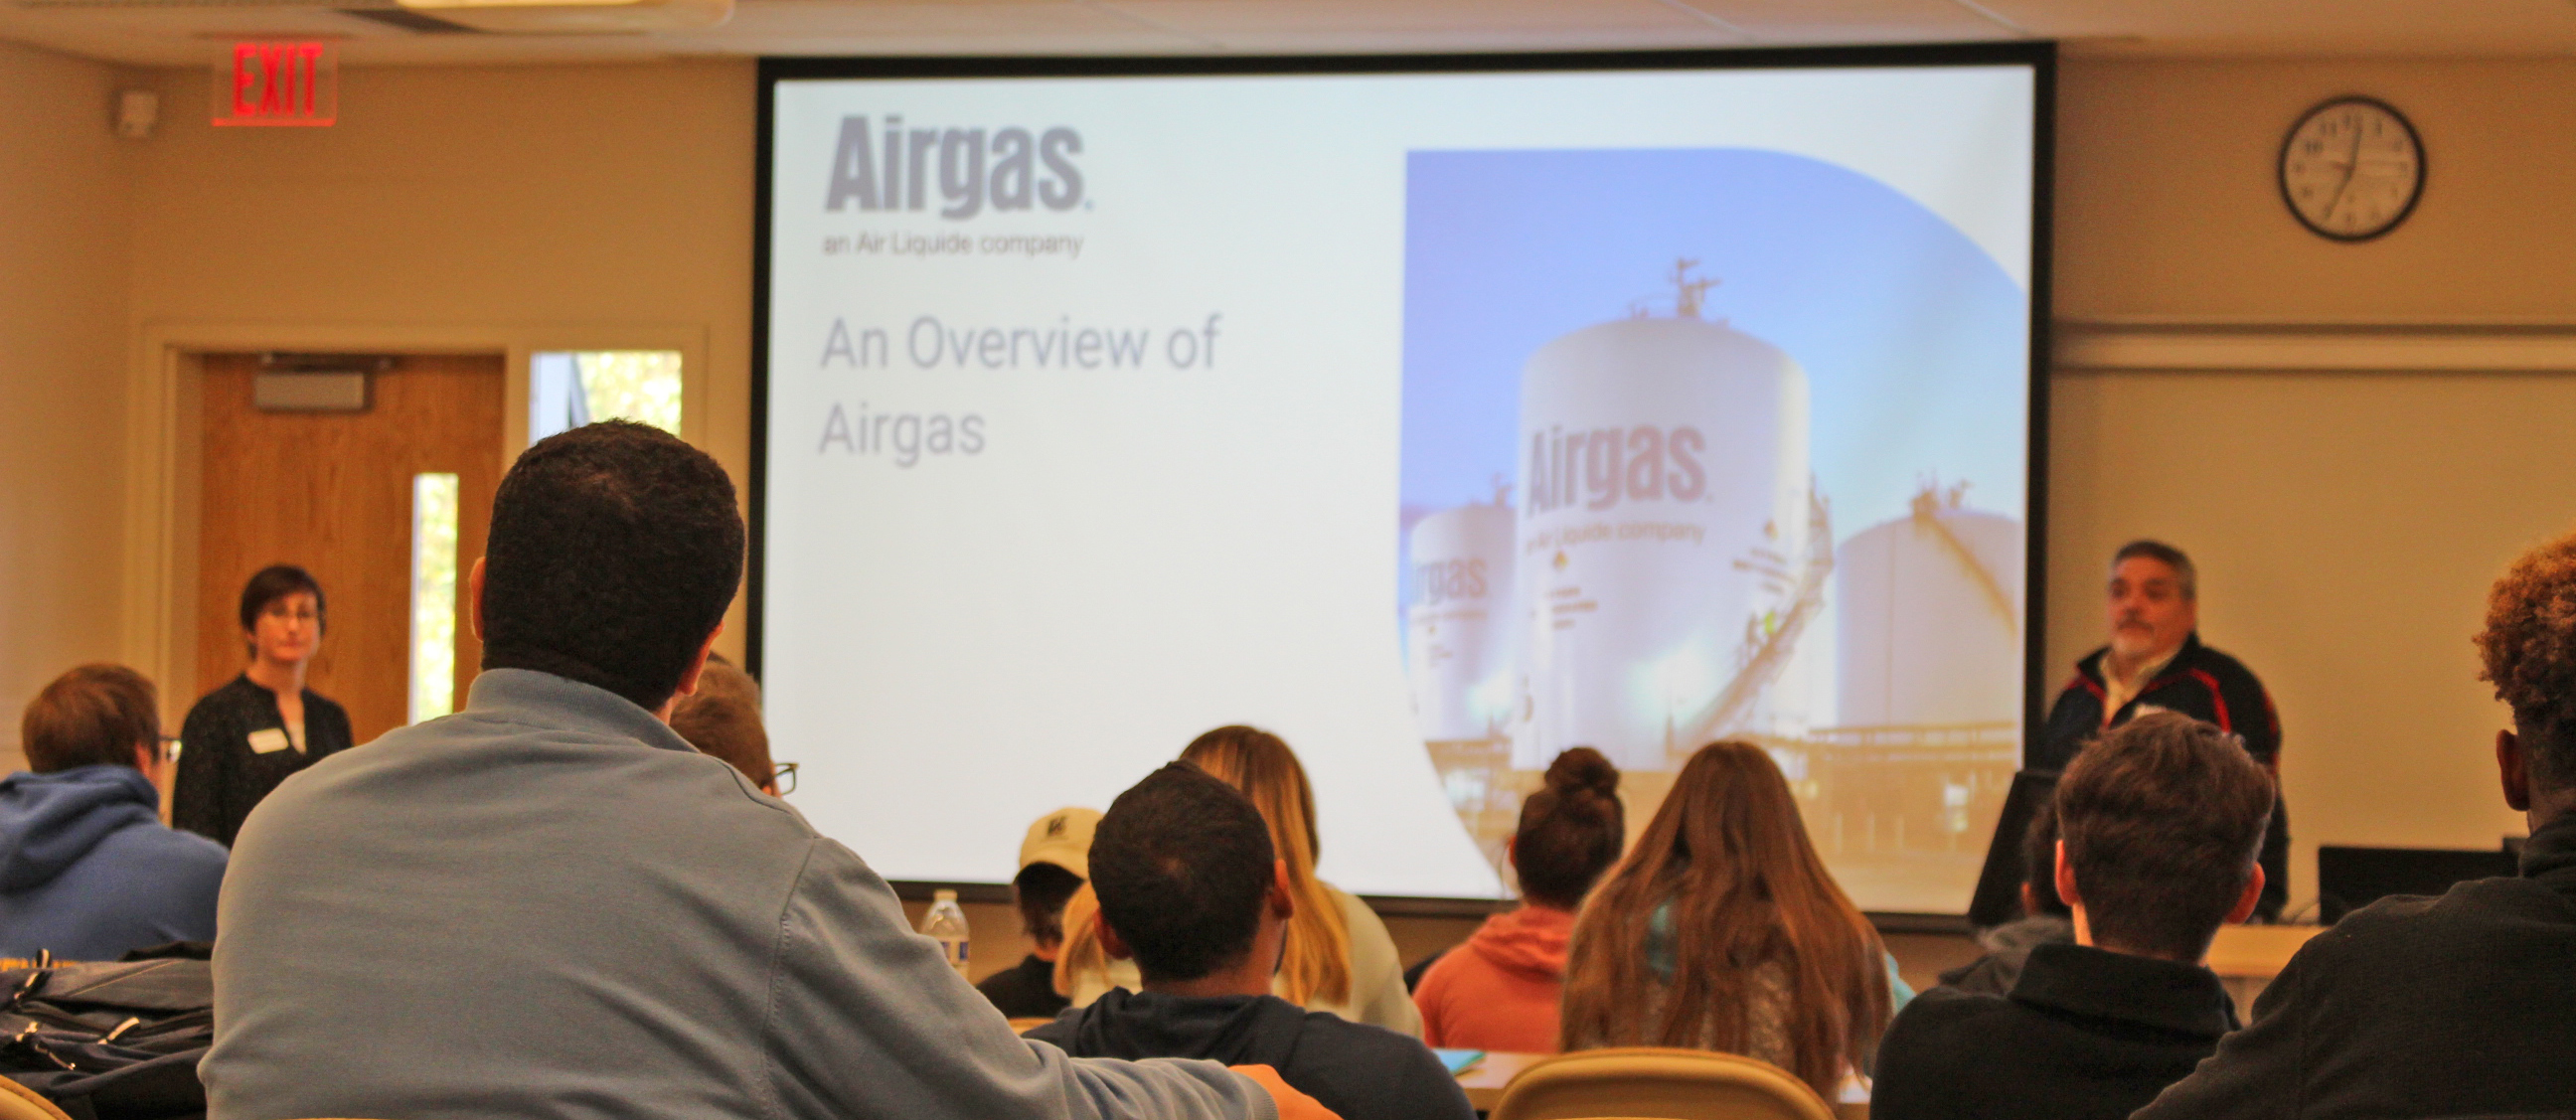 Airgas Visits ACT 222 on October 22, 2019